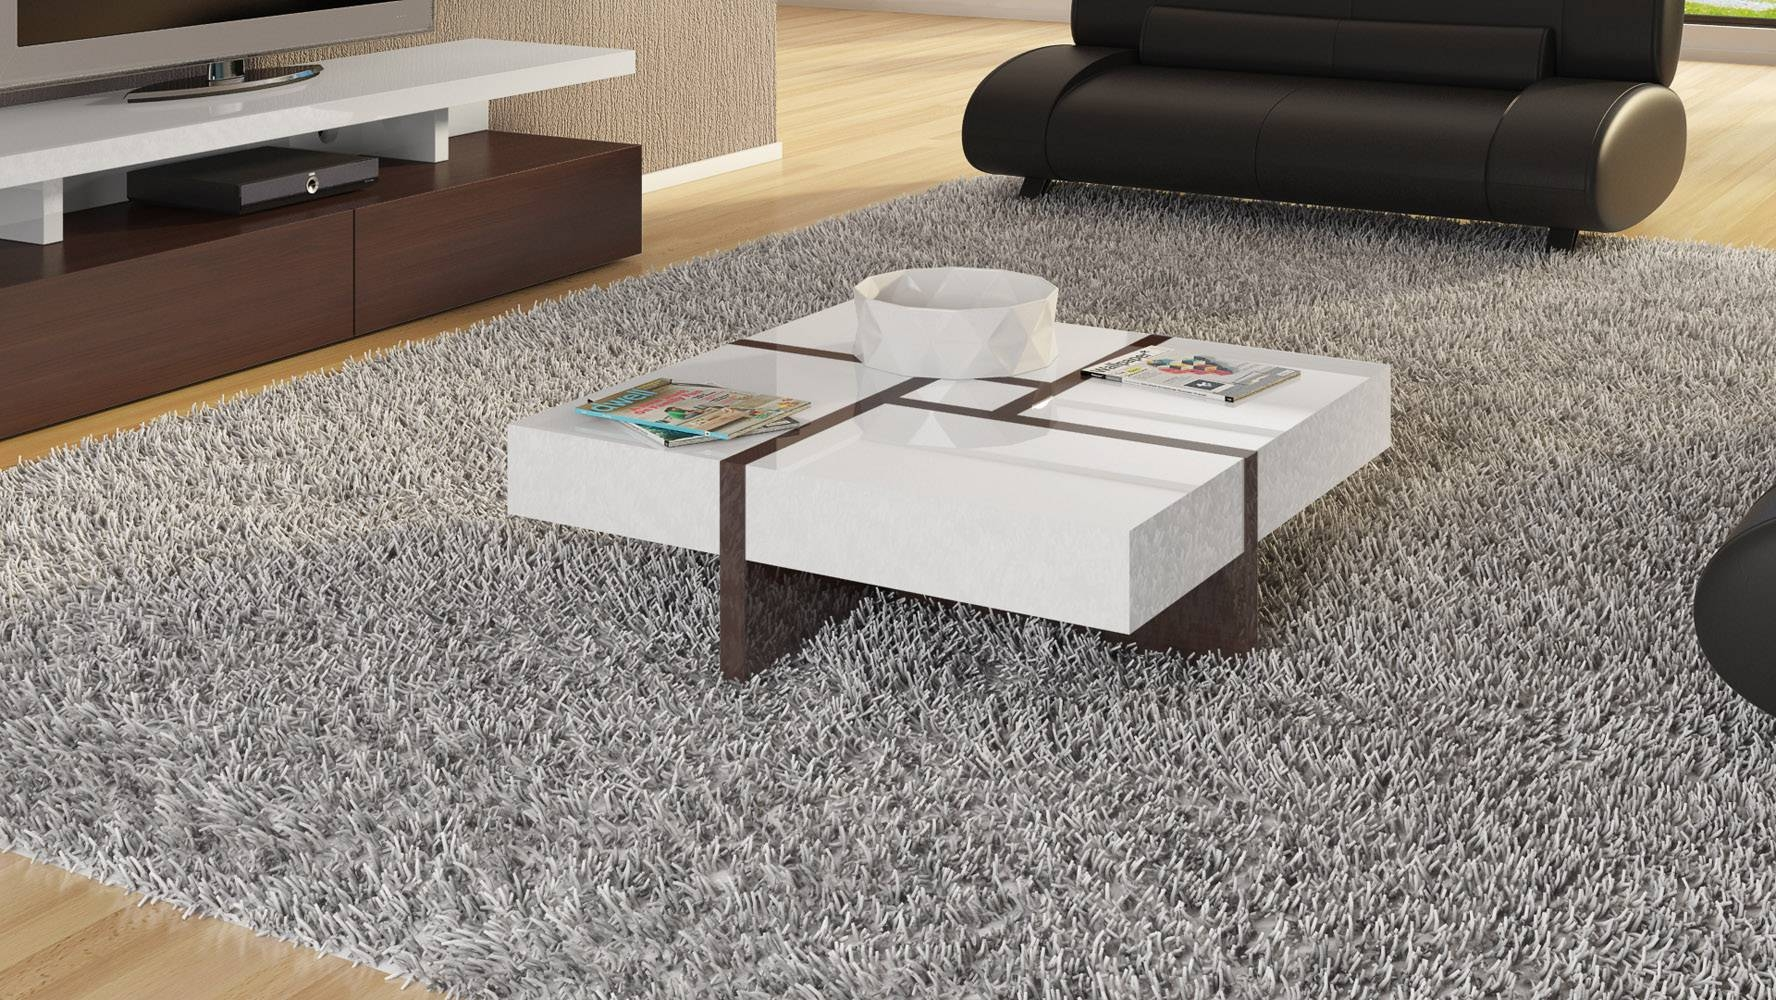 Mcintosh High Gloss Coffee Table With Storage – White Square Pertaining To White Gloss Coffee Tables (View 17 of 30)